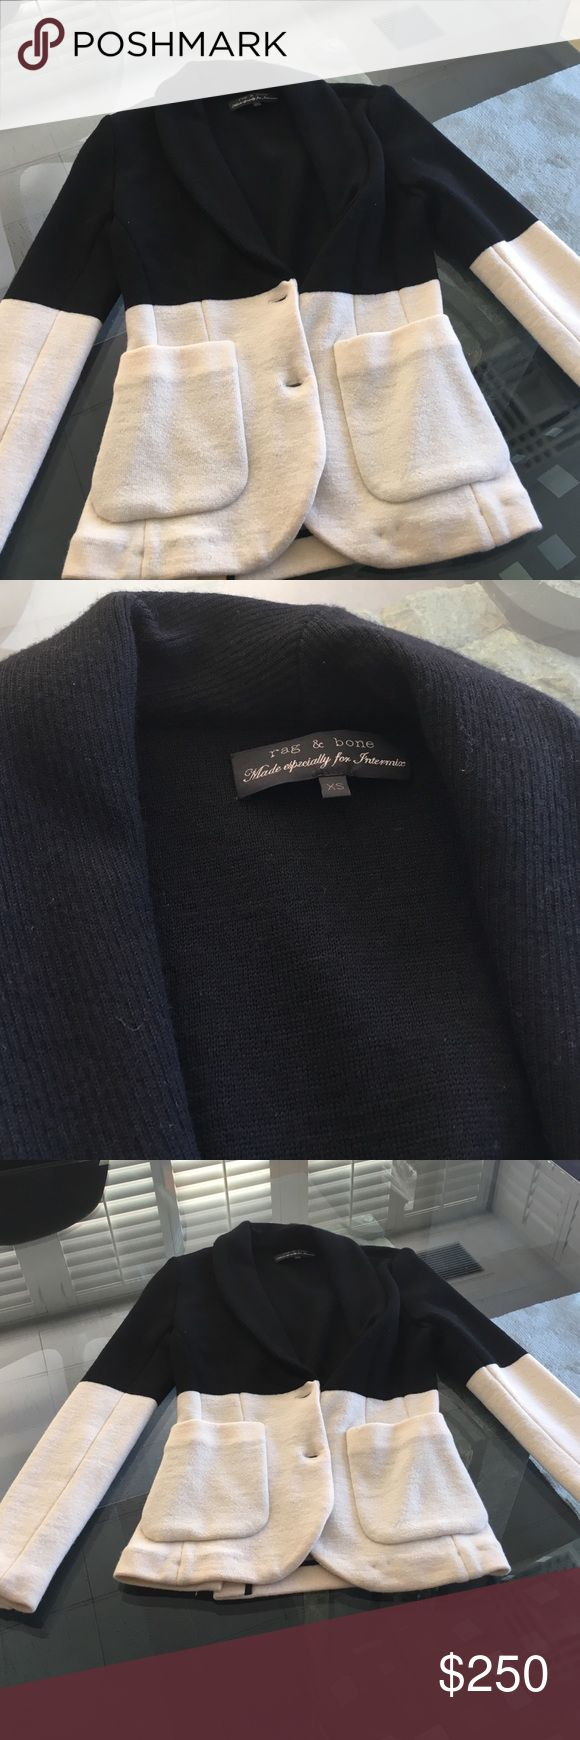 Rag and bone stylish blazer! Two toned rag and bone blazer! Perfect to pair with jeans and a heel, or to dress up with a stylish dress! (Never worn) rag & bone Jackets & Coats Blazers